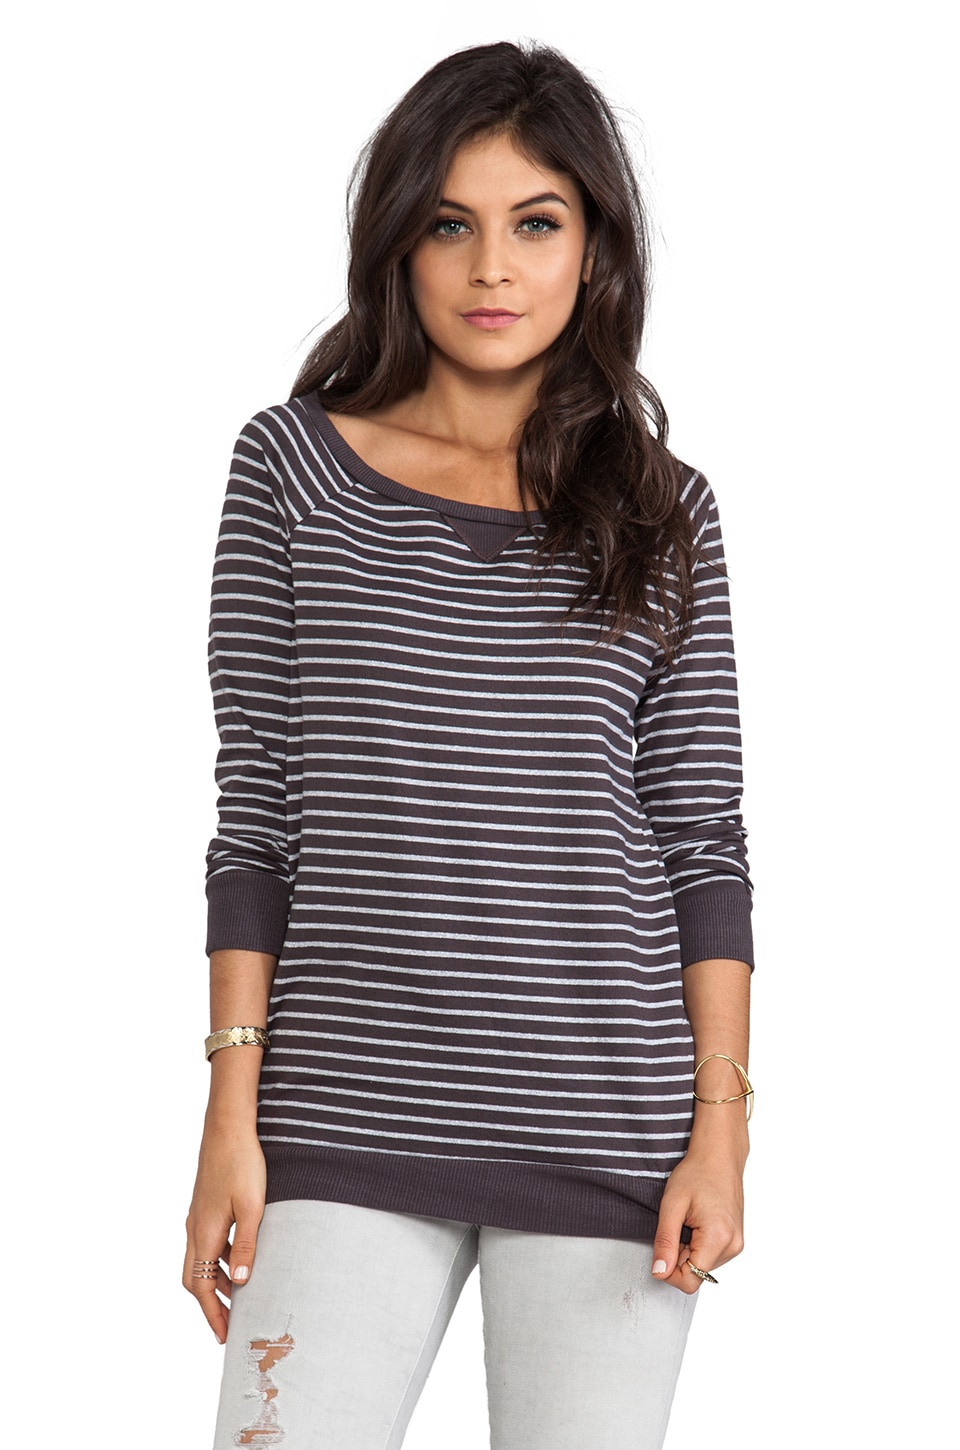 Soft Joie Briely Stripe Top en Shale/Heather Grey